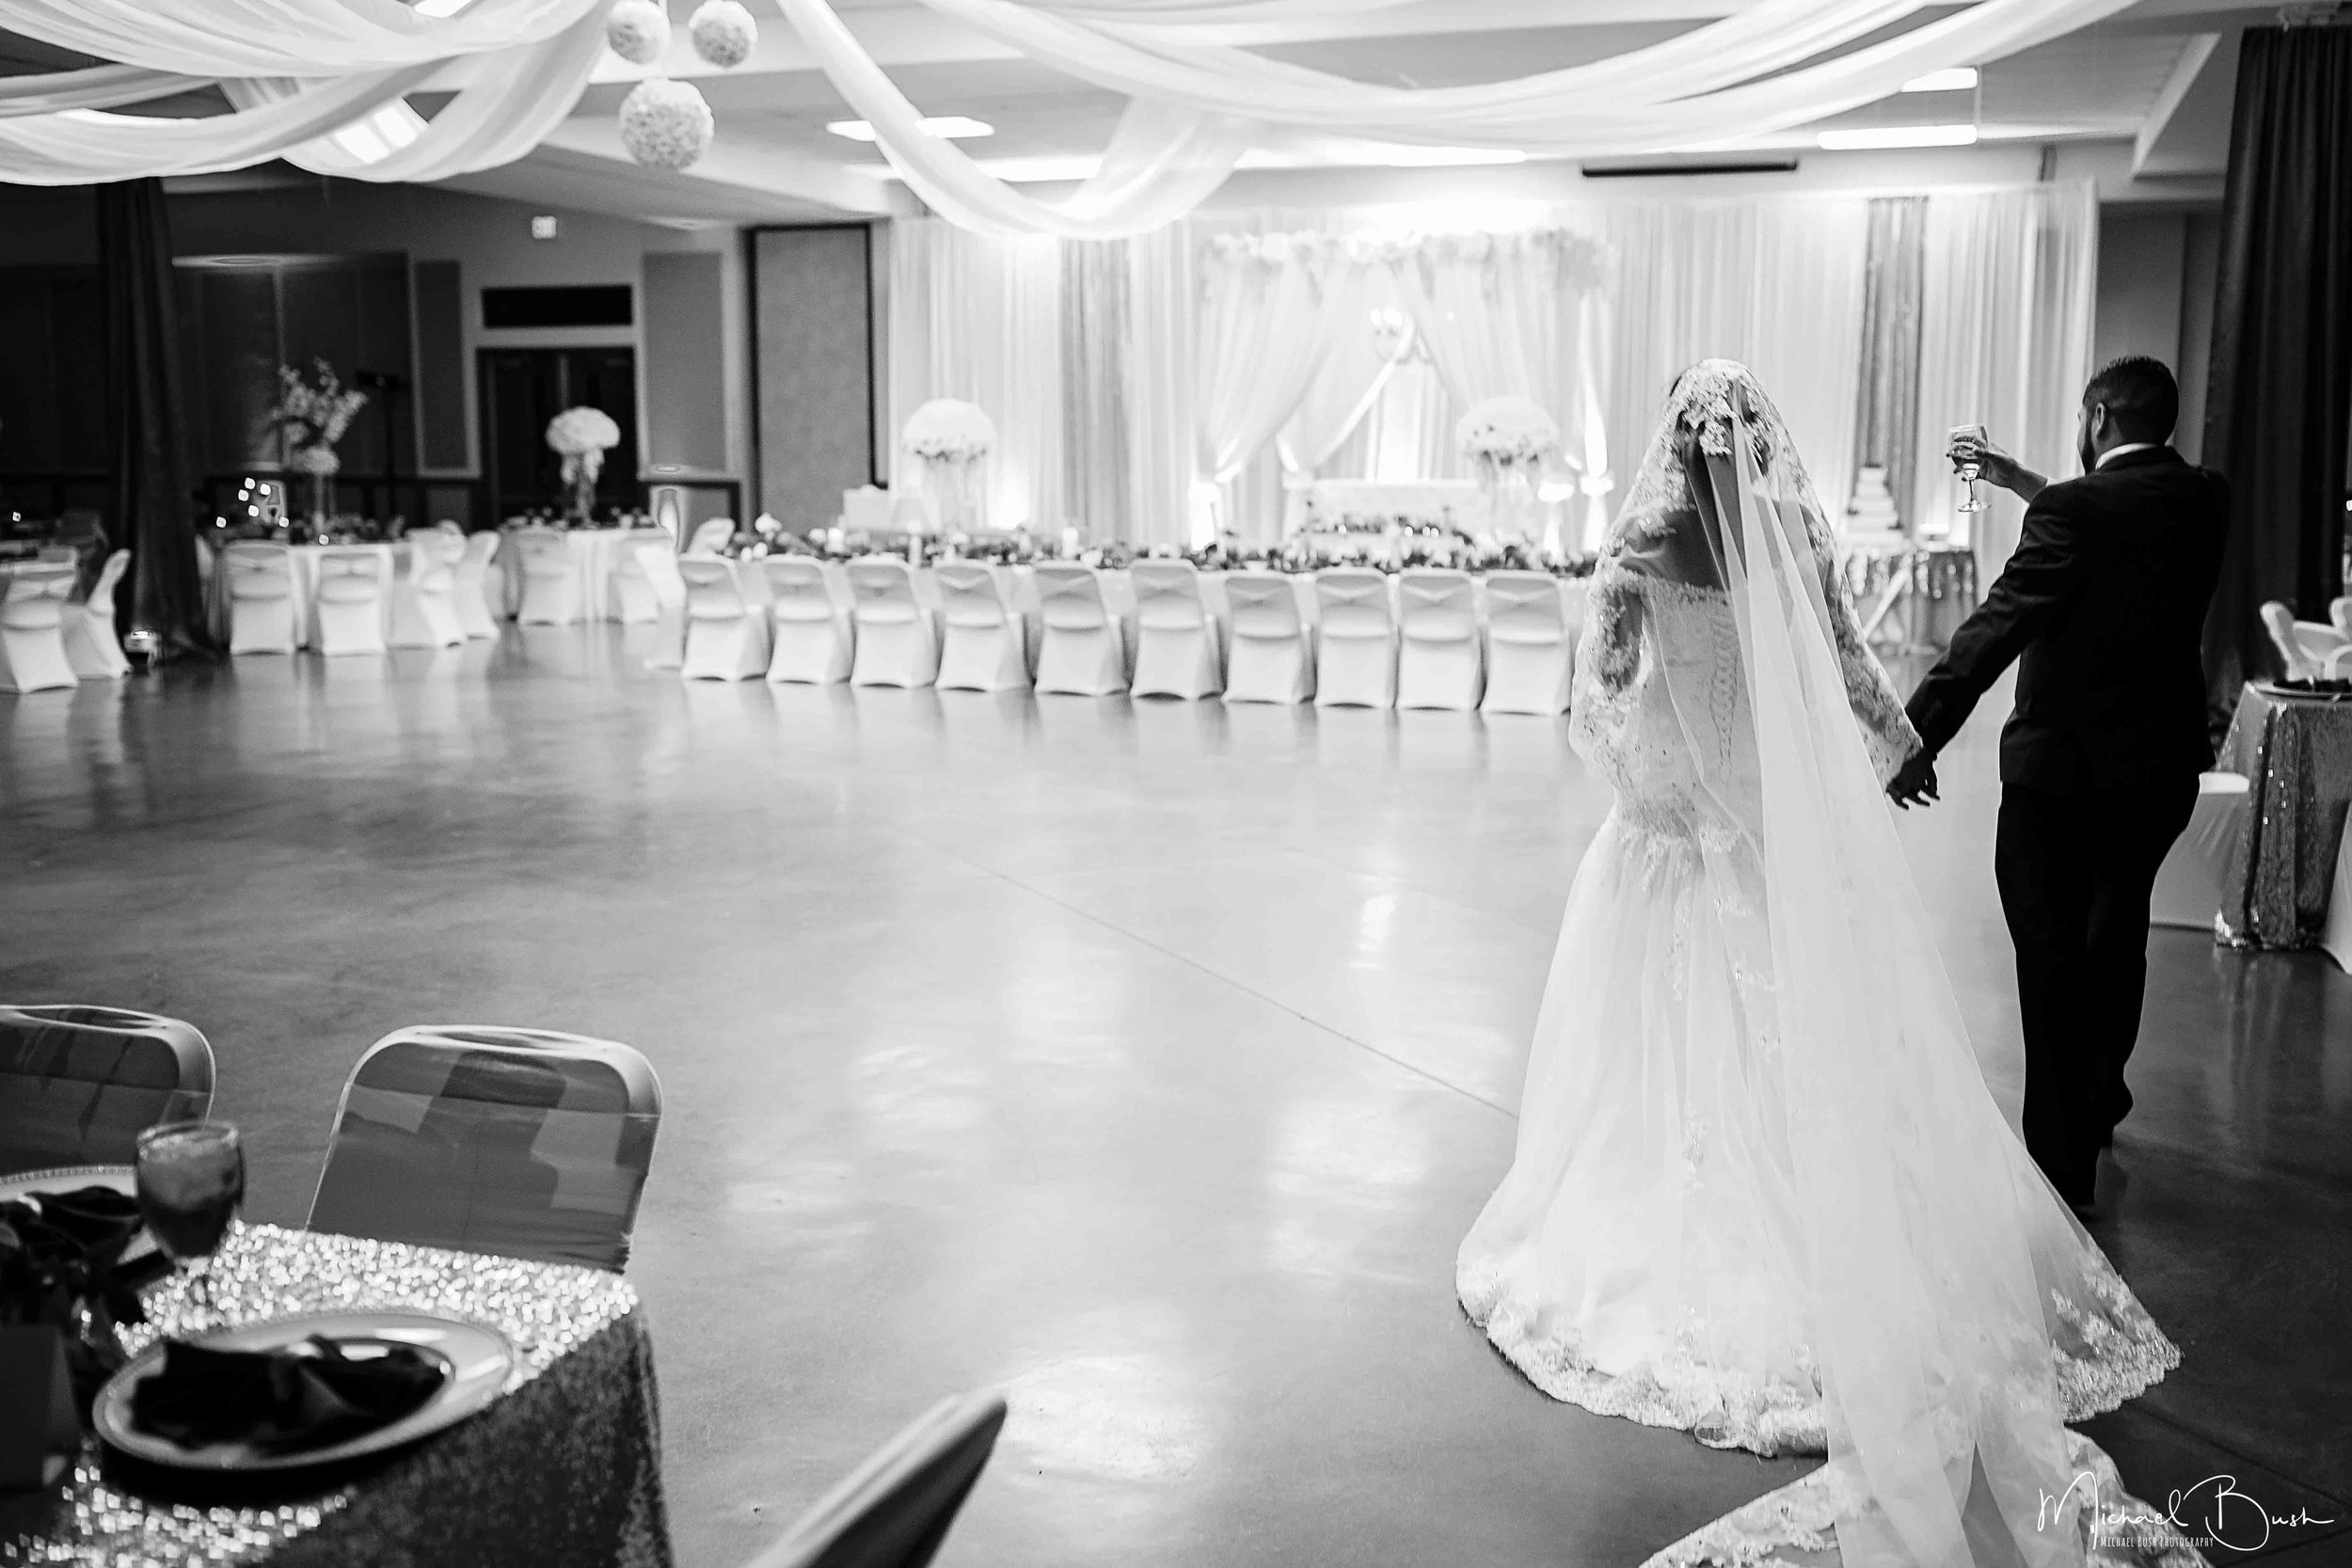 Wedding-Reception-Detials-Fort-Worth-Venue-b&w.jpg